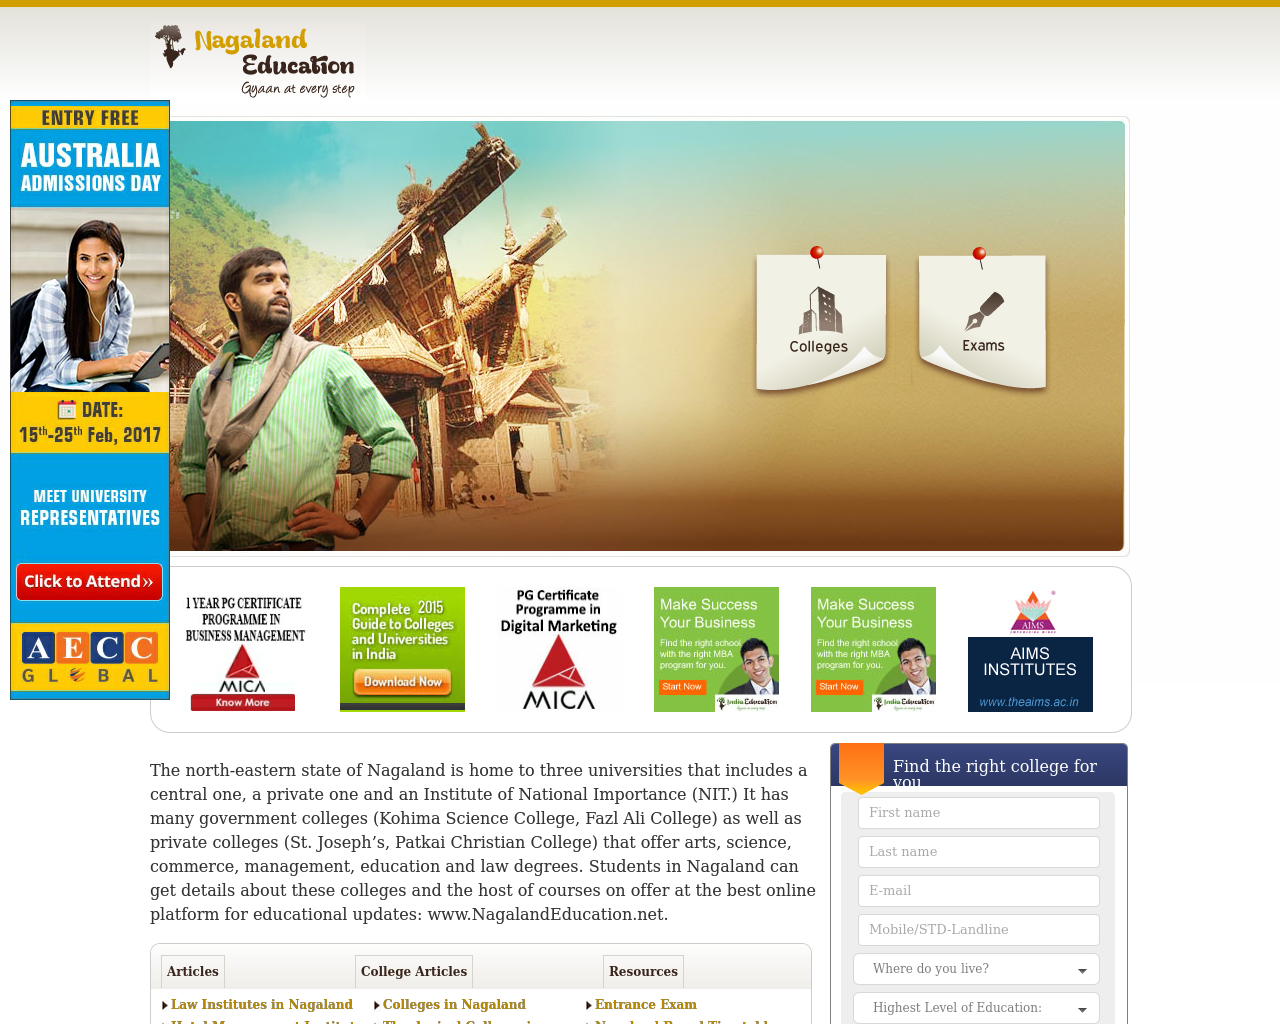 Nagaland-Education-Advertising-Reviews-Pricing